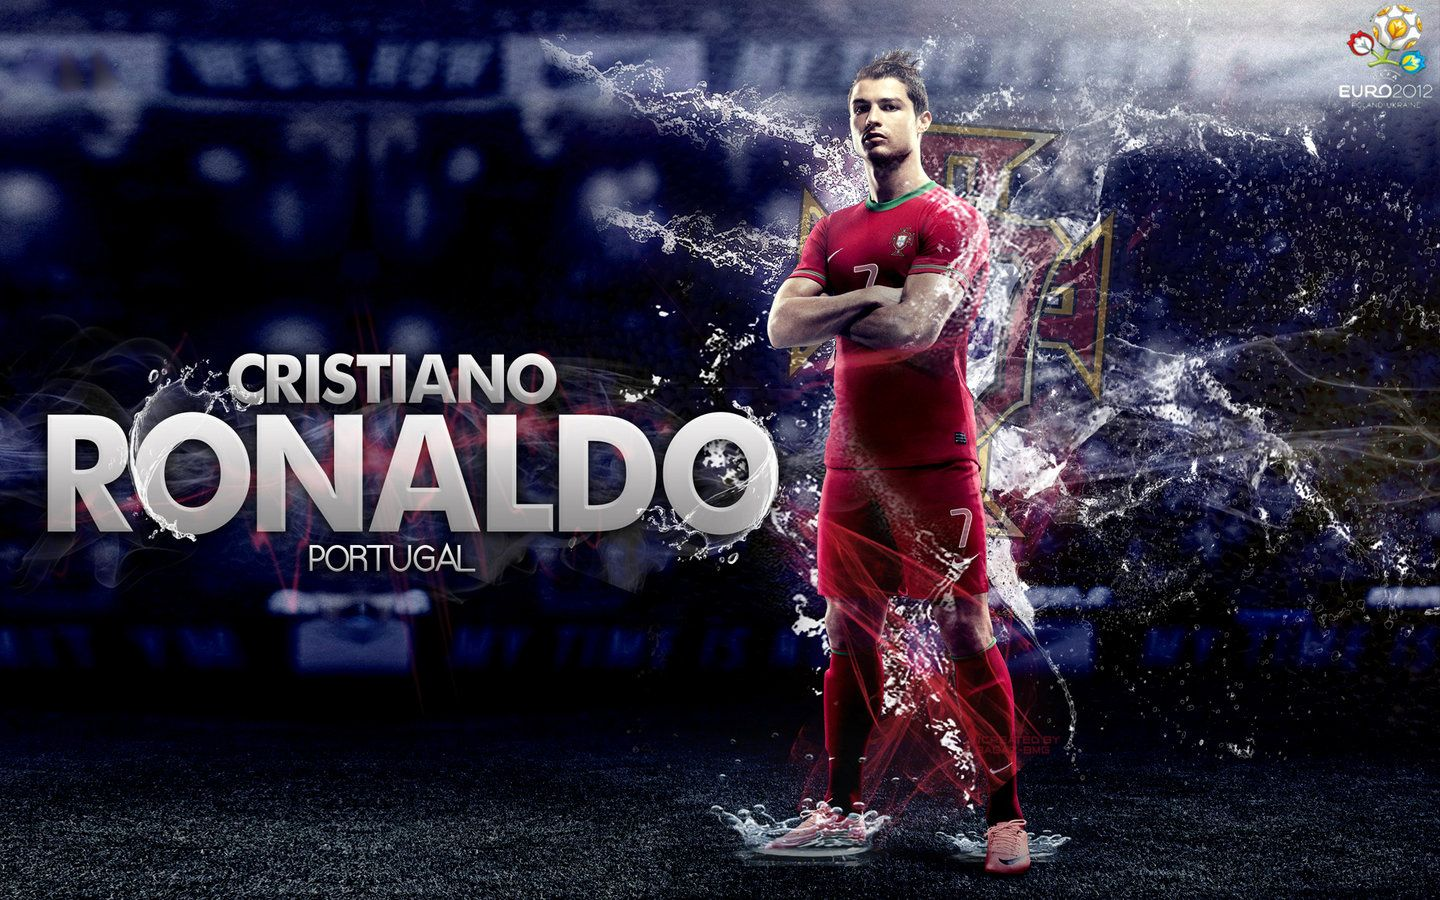 Cr7 wallpaper httpwallpaperscelebssocial20160102logo cristiano ronaldo portugal skills goalswc 2014 be readyvideo by teo cri voltagebd